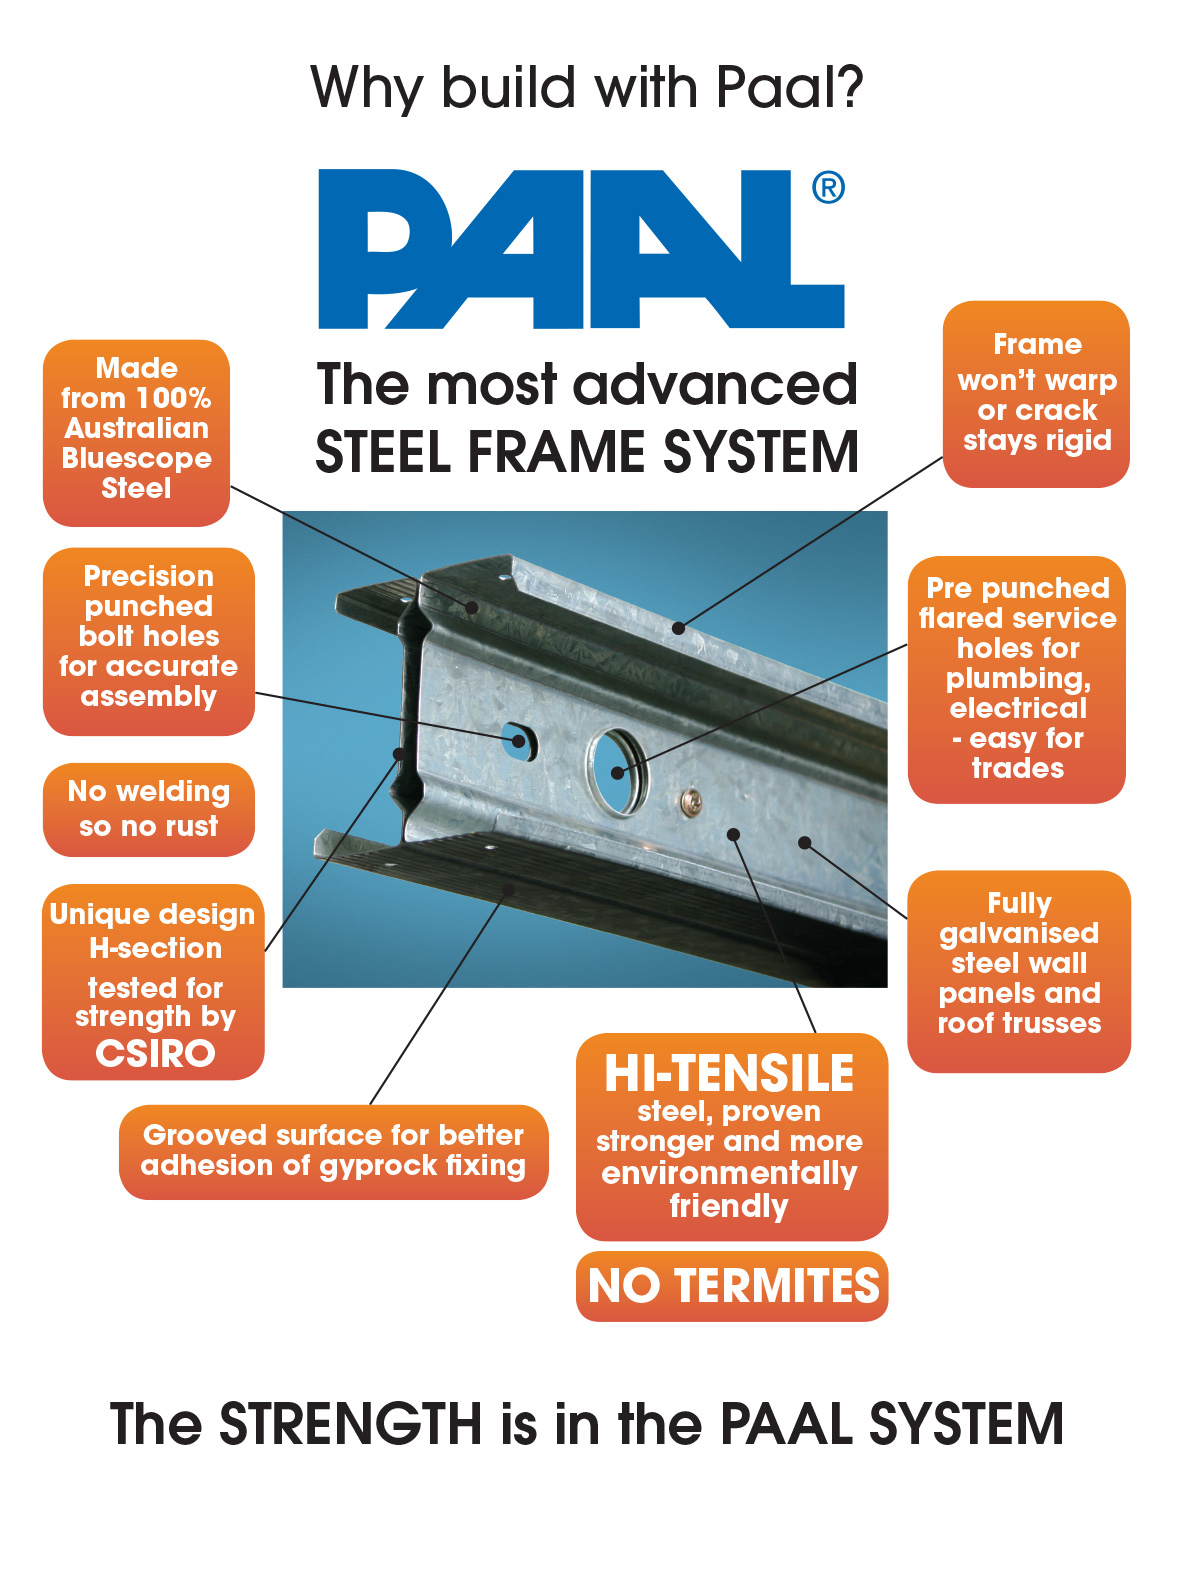 PAAL Kit Homes boast the most advanced Steel Frame System made from 100% Australian Bluescope Steel with precision punched bolt holes for accurate assembly. PAAL's Hi-Tensile steel wall panel and roof truss framing is fully galvanised and has no need for welding which eliminates chances of rust and no termites! The unique design H-section has been tested for strength by CSIRO, stays rigid, won't warp or crack and has pre punched flared holes for plumbing and electrical making it easier for trades.